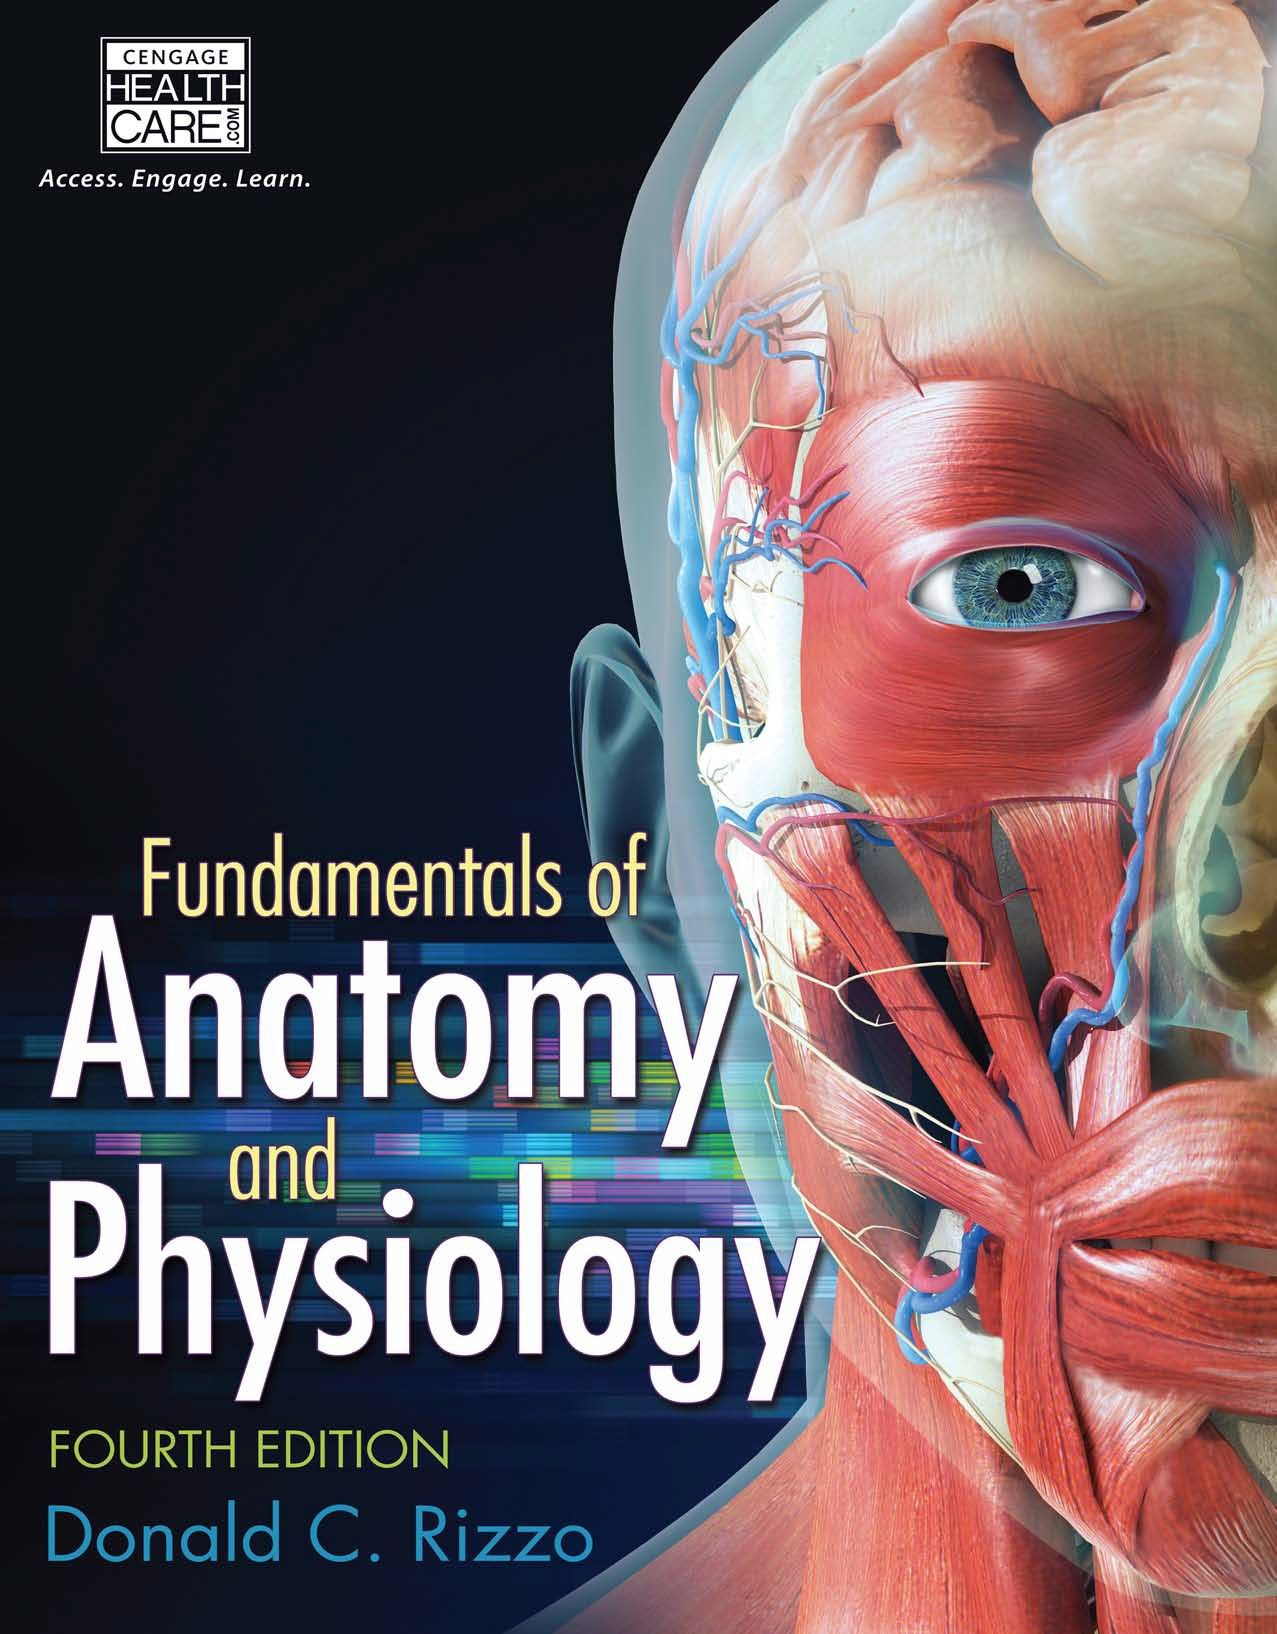 Fundamentals of Anatomy and Physiology 4th Edition pdf | Anatomy ...